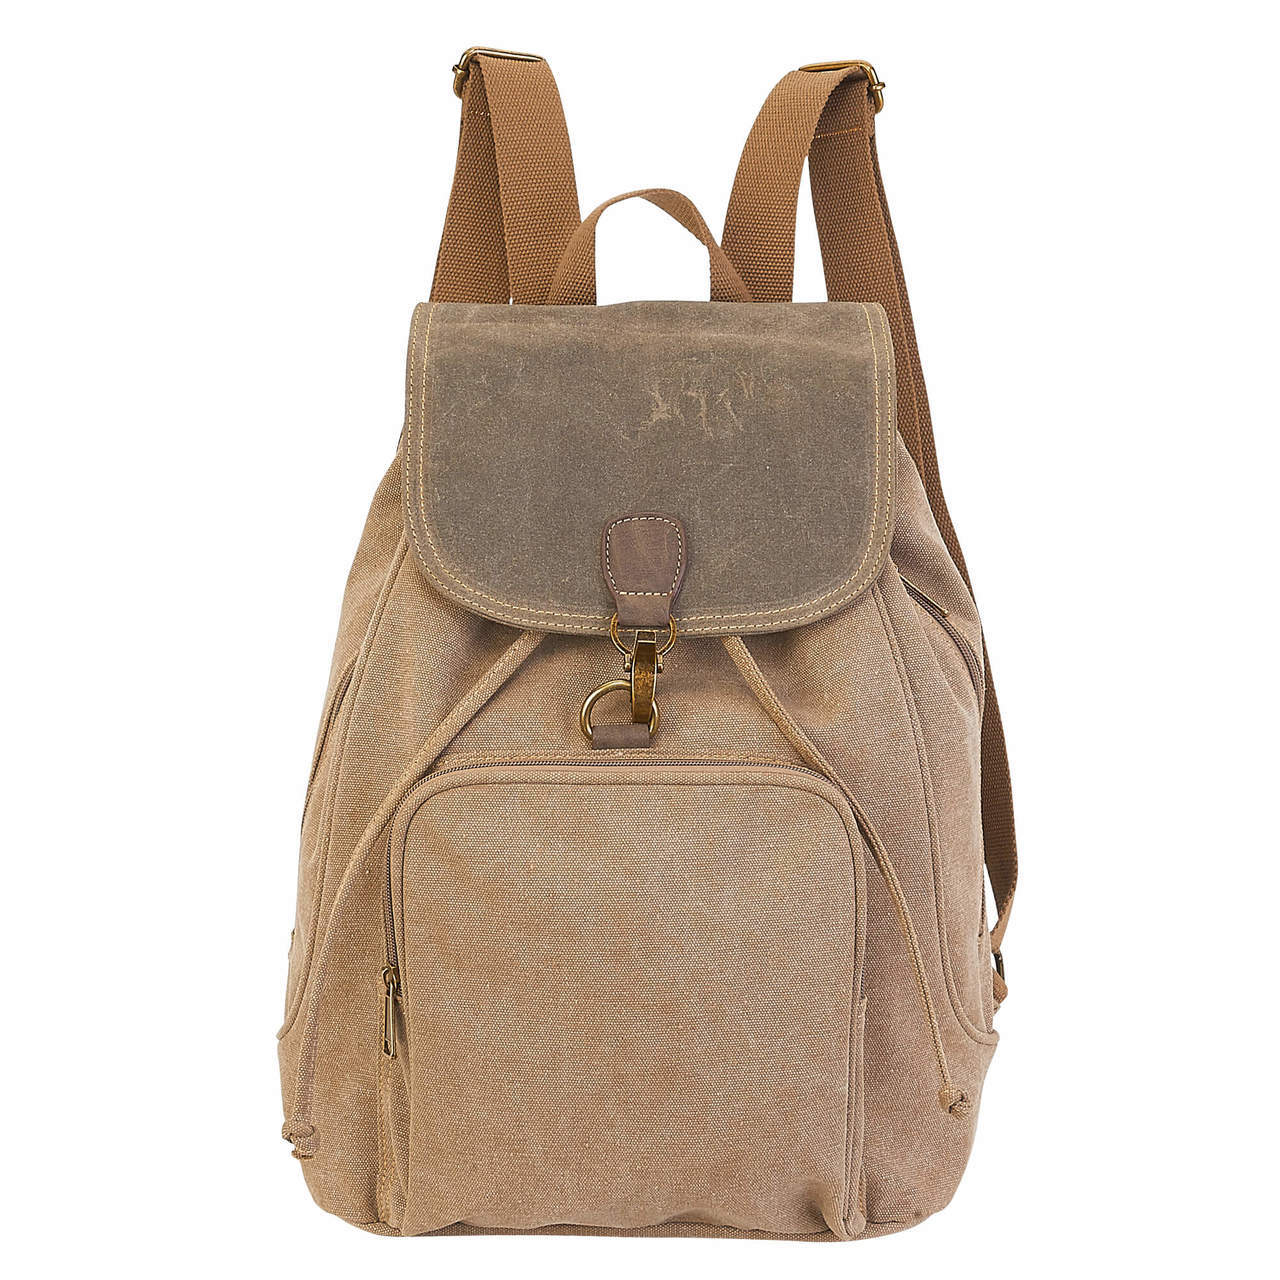 Rustic Flap Over Backpack